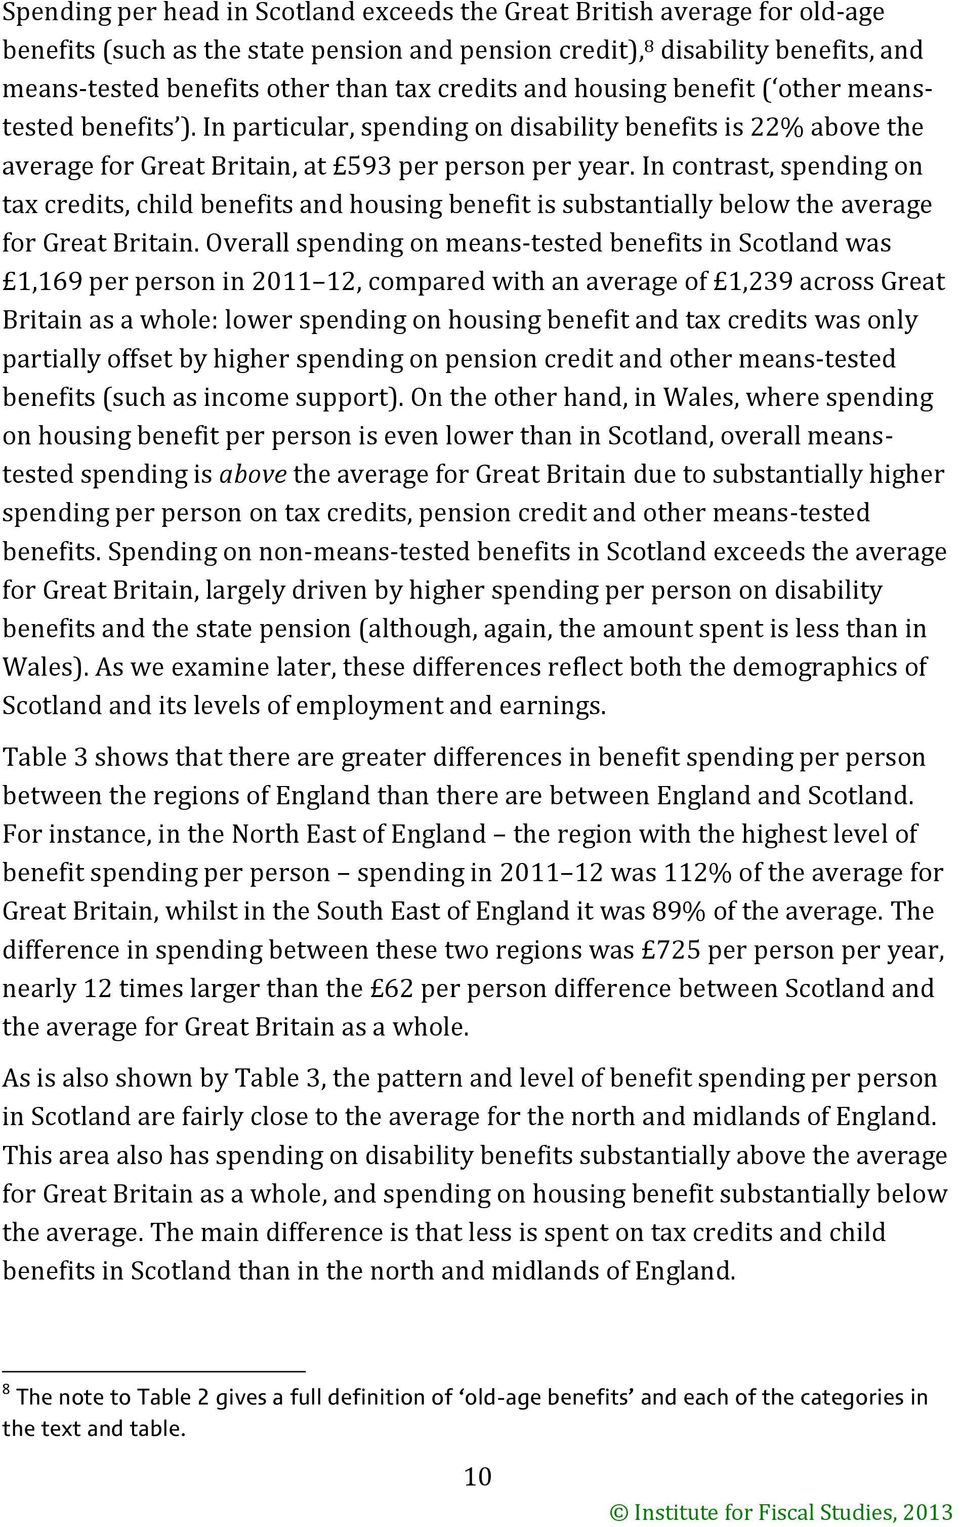 In contrast, spending on tax credits, child benefits and housing benefit is substantially below the average for Great Britain.